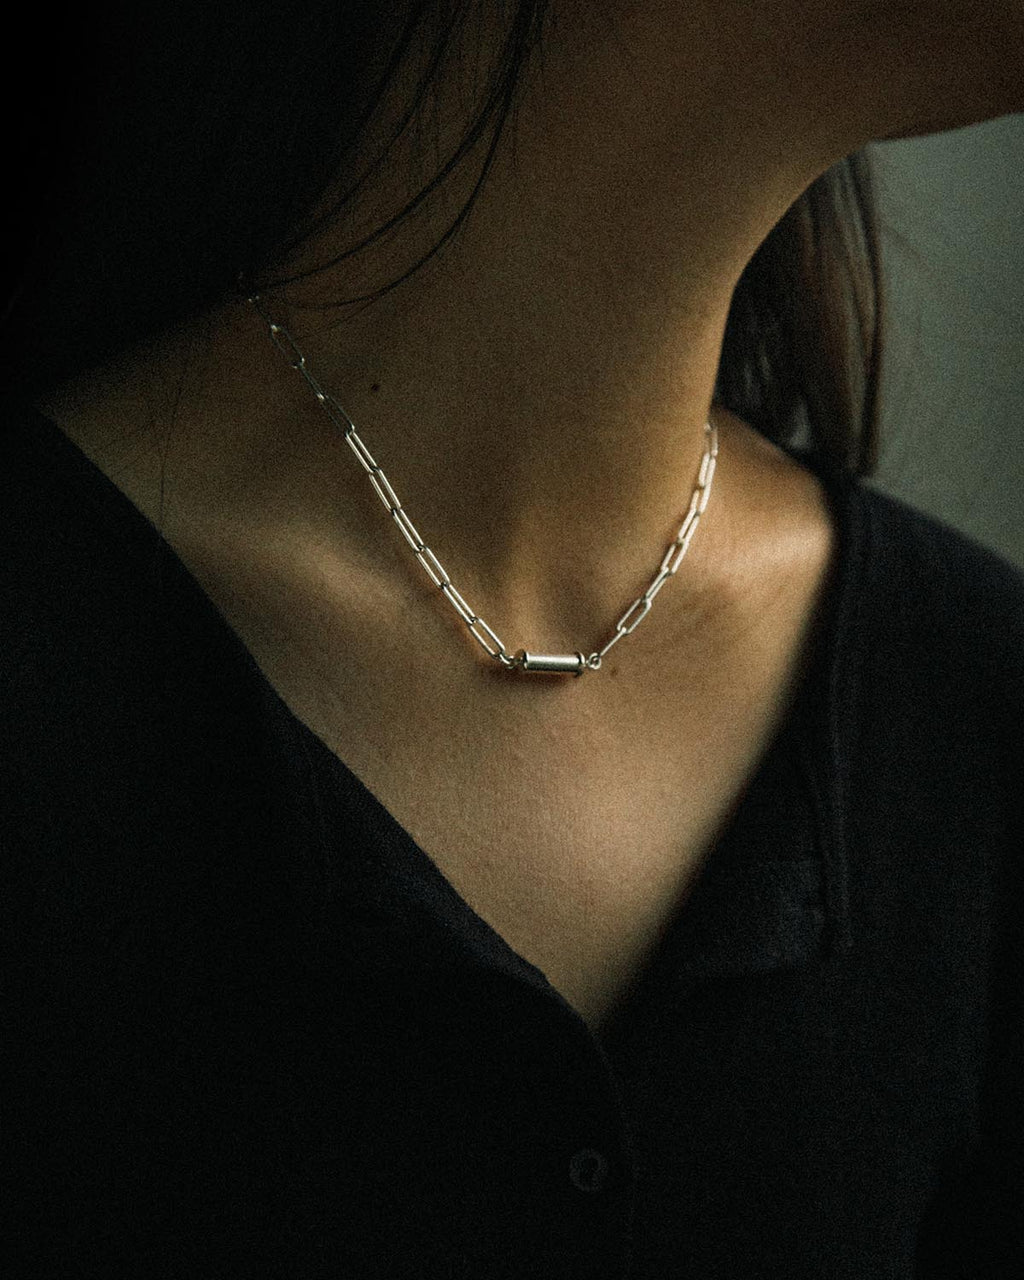 soft and sticky paperclip sterling silver necklace with magnetic clasp closure